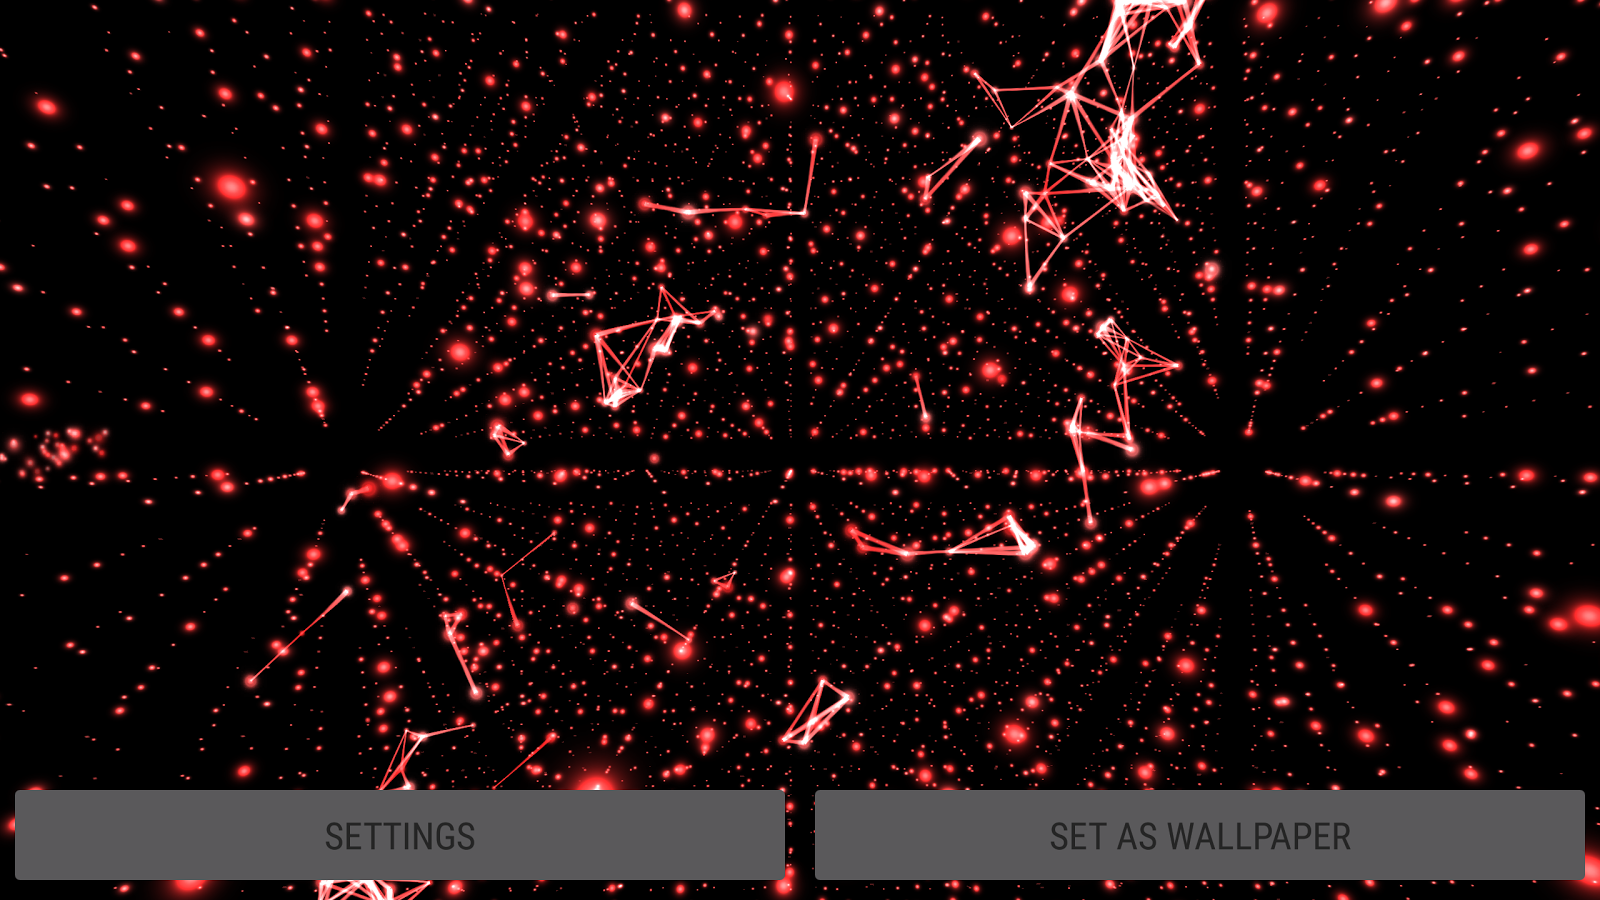 Particles Best 3d Wallpaper For Pc Android Iphone: Parallax Infinite Particles 3D Live Wallpaper